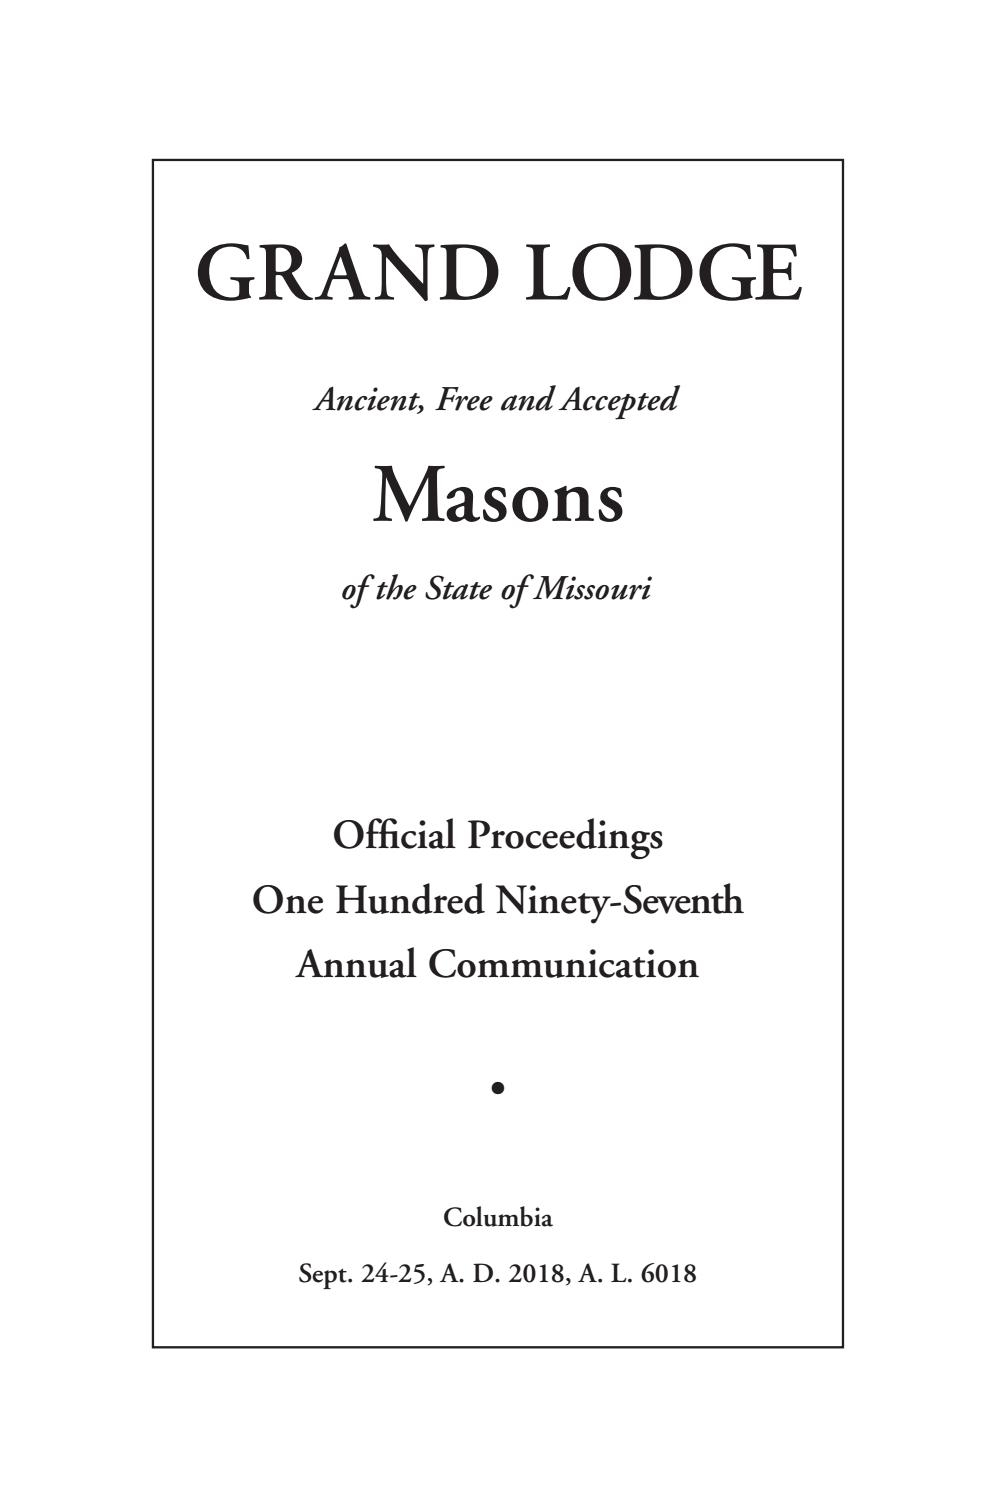 Official Proceedings - Grand Lodge Mo Annual Communication Regarding Las Cruces School Calendar 2021 20